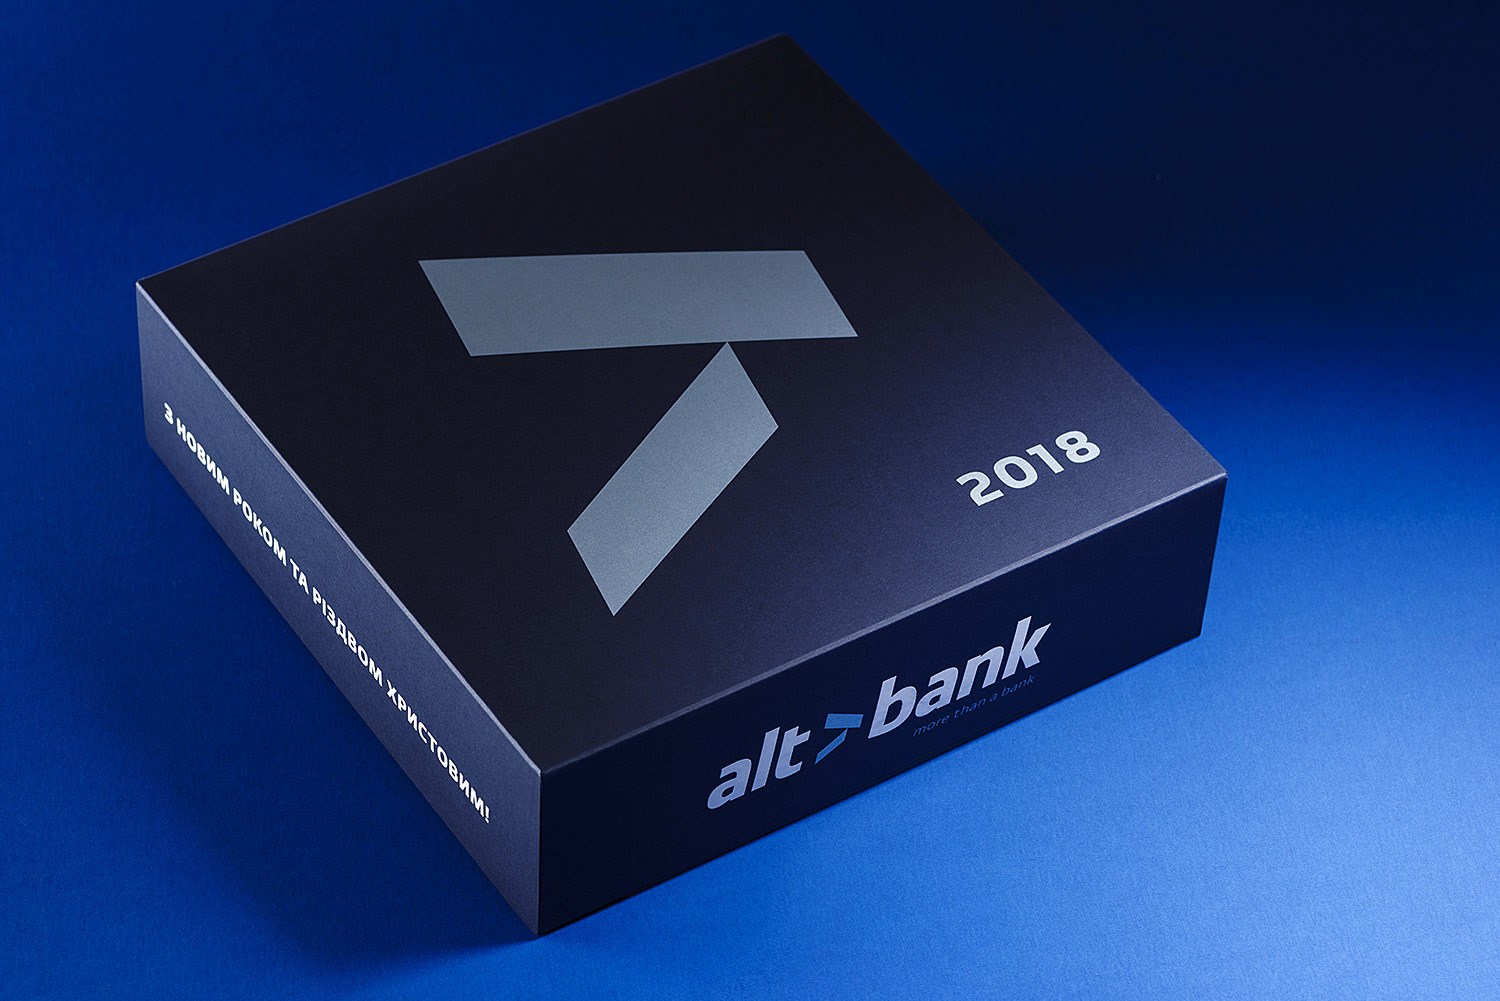 The designer cardboard box for chocolate with Altbank's logo.